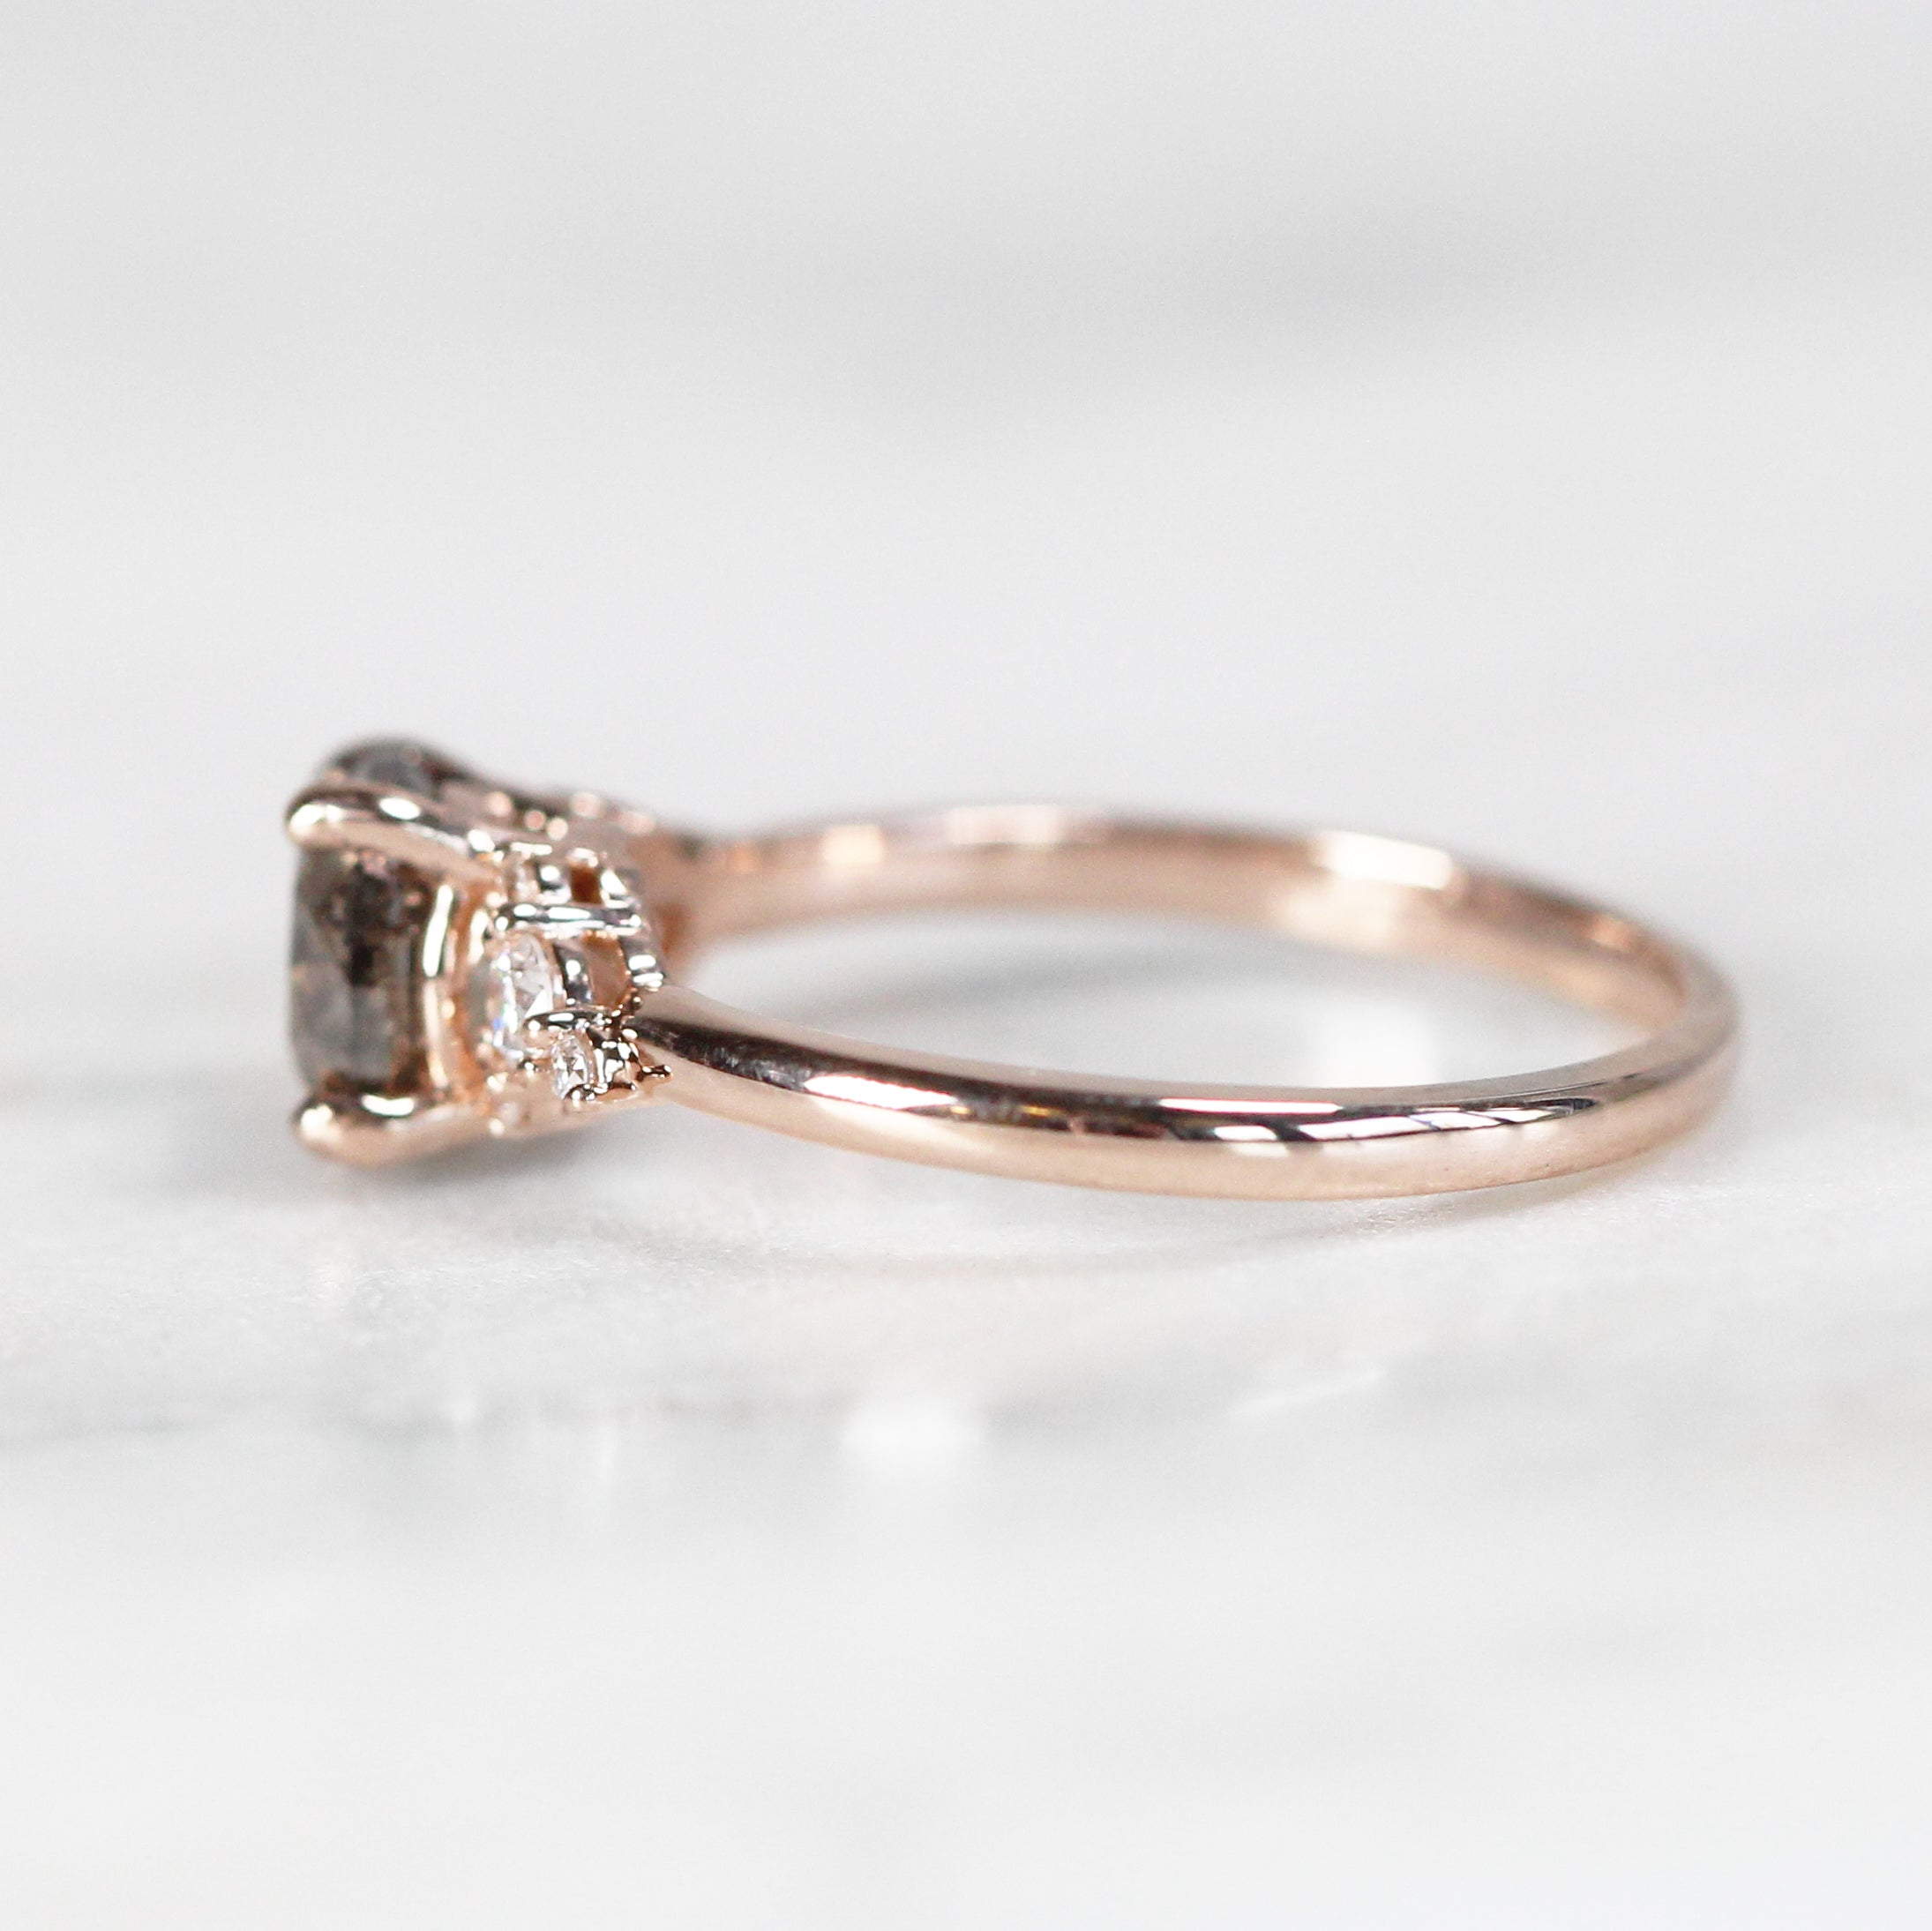 Marley Ring with 1.45 Carat Round Celestial Diamond® in 10k Rose Gold- Ready to Size and Ship - Celestial Diamonds ® by Midwinter Co.